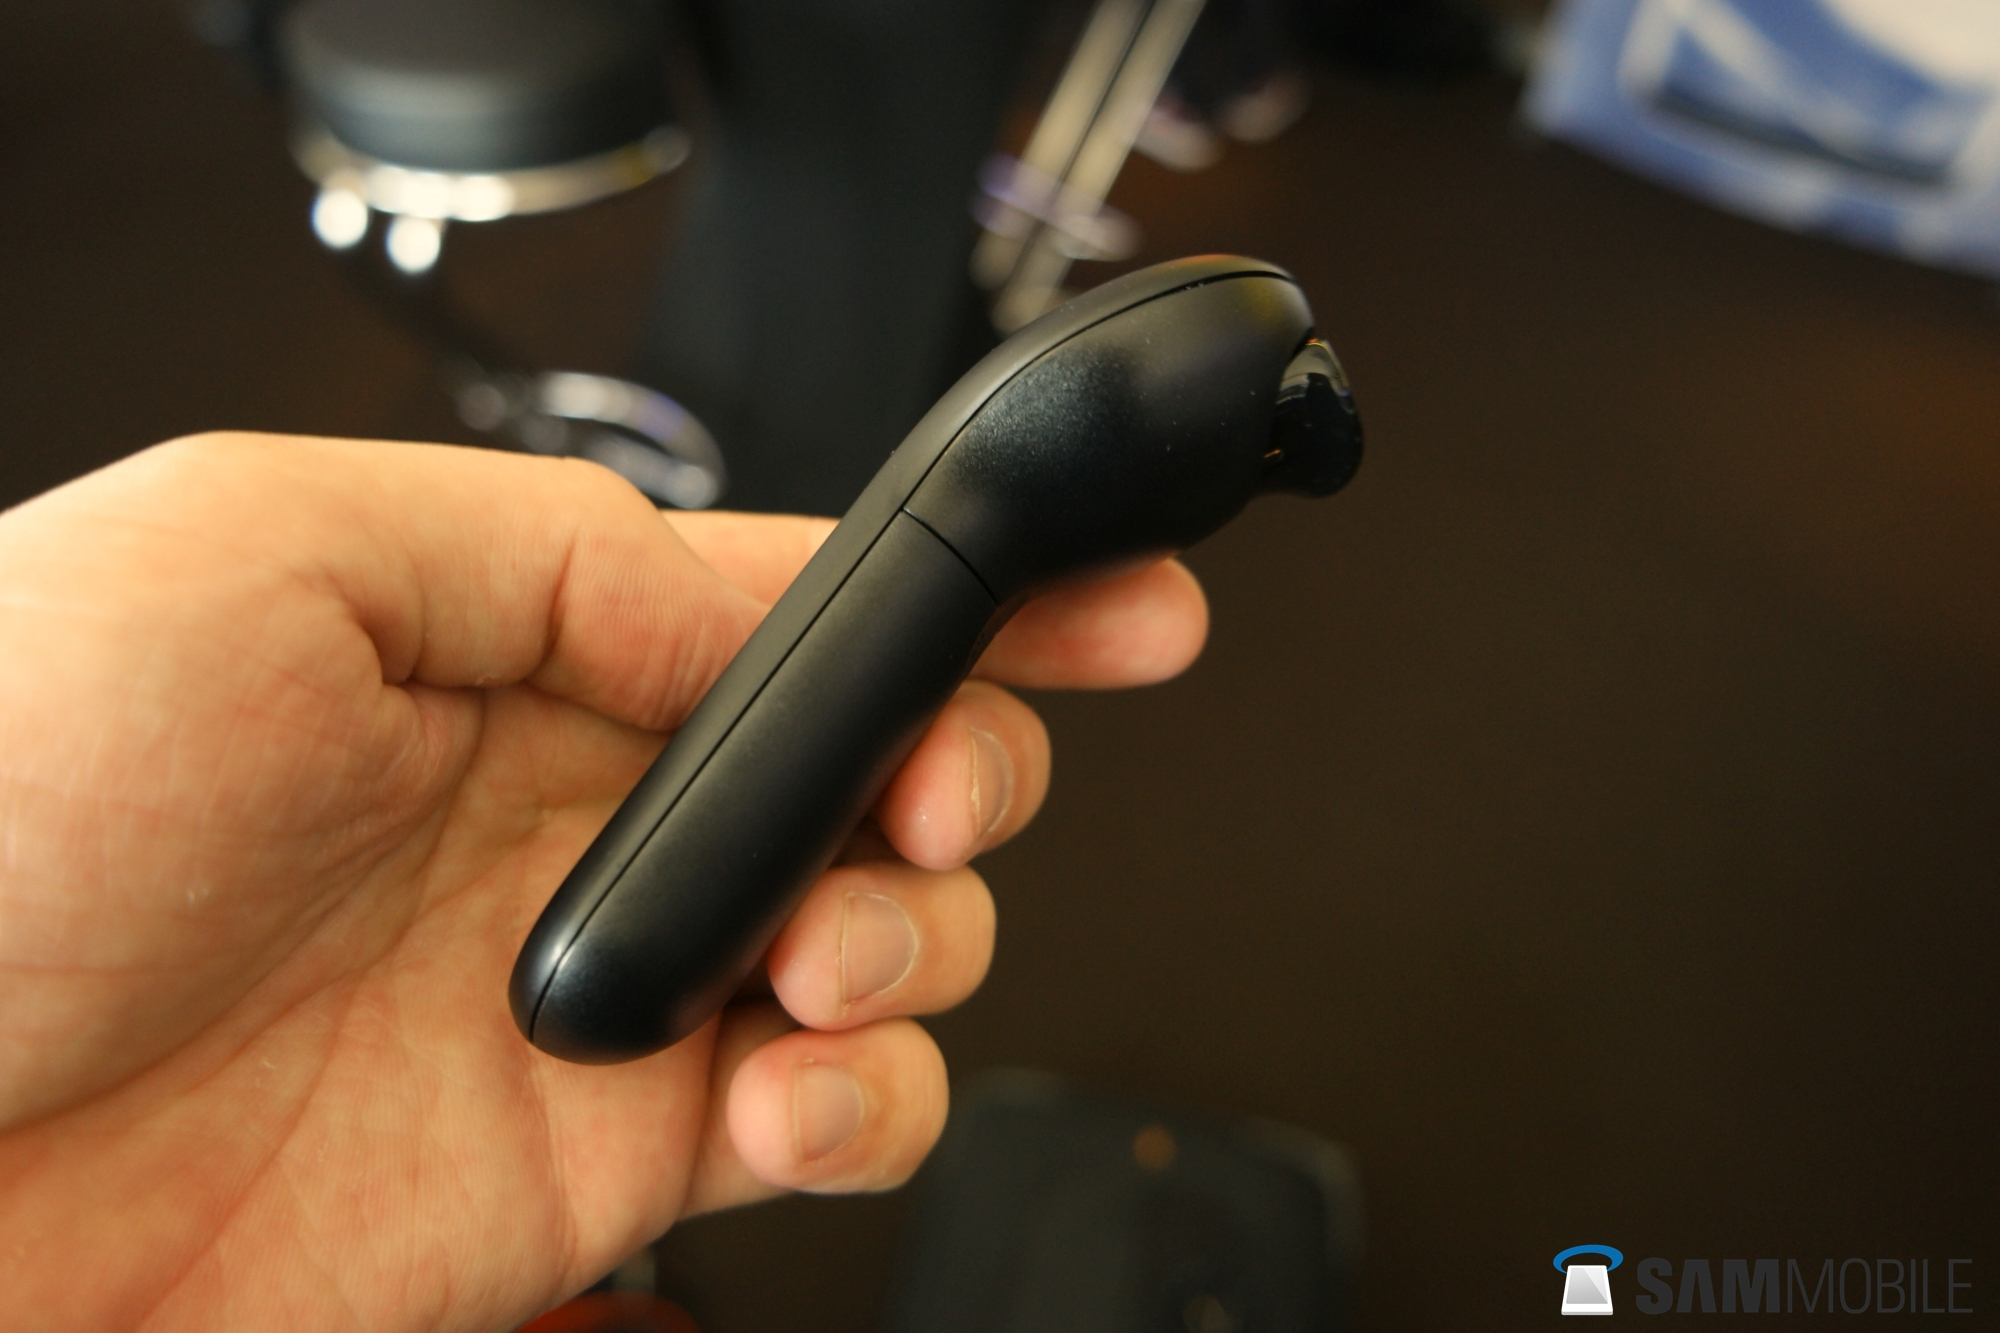 Hands-on with Samsung's Gear VR controller - SamMobile - SamMobile